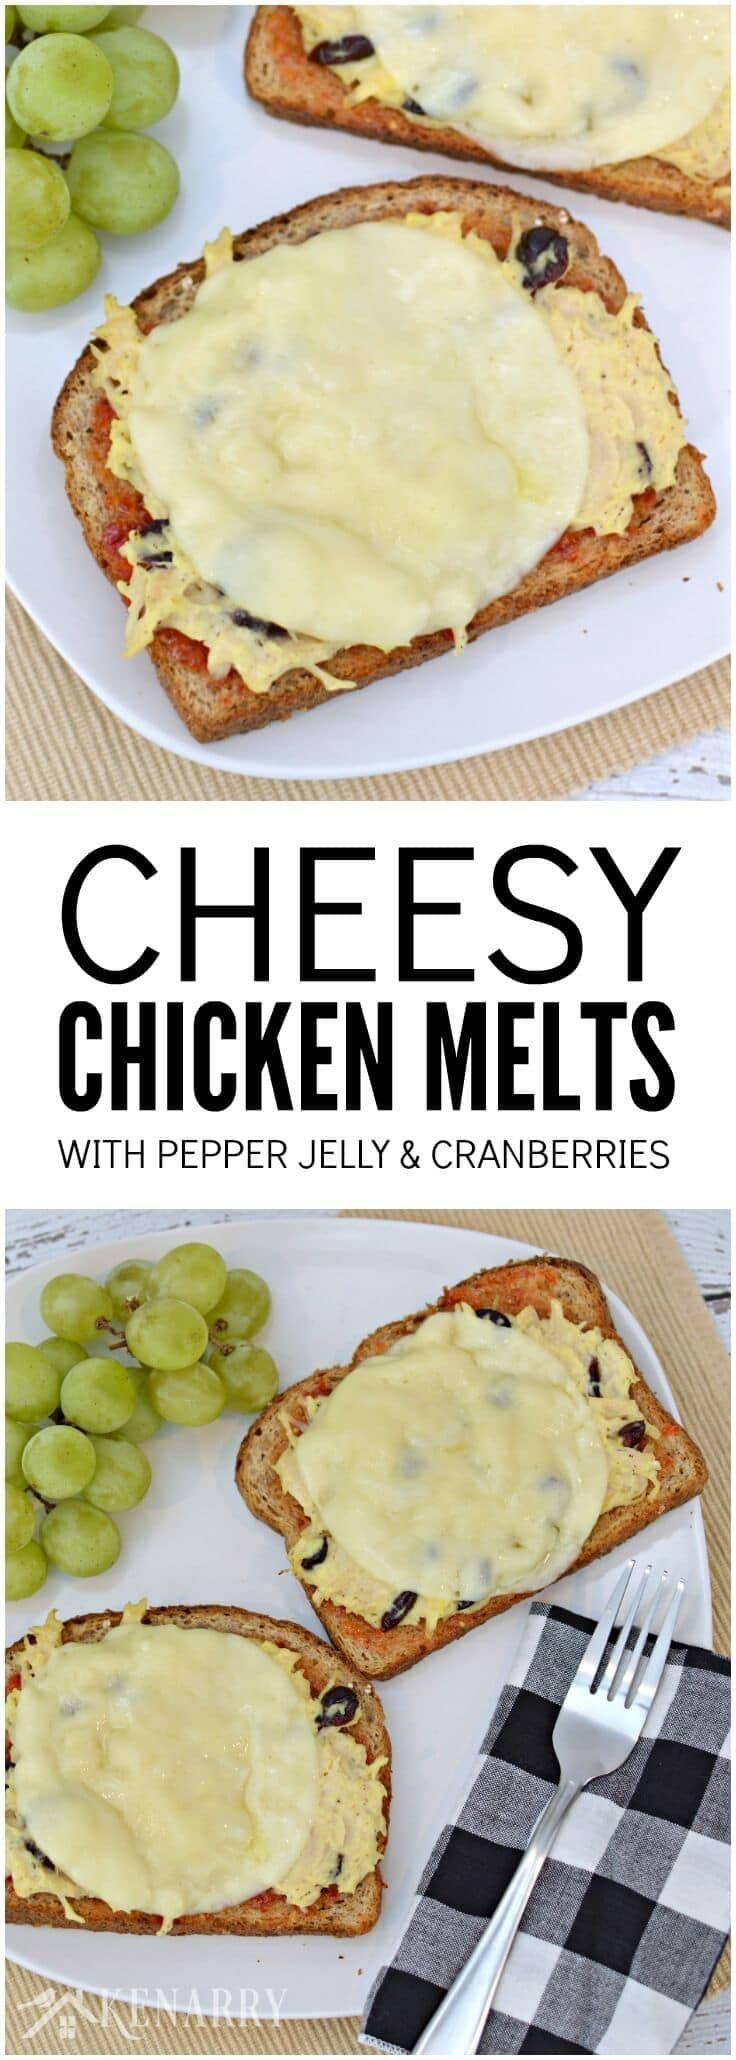 For an easy weeknight dinner idea, make this cheesy chicken melts recipe with canned chicken, red pepper jelly, dried cranberries and 100% real, natural sliced cheese from Sargento.